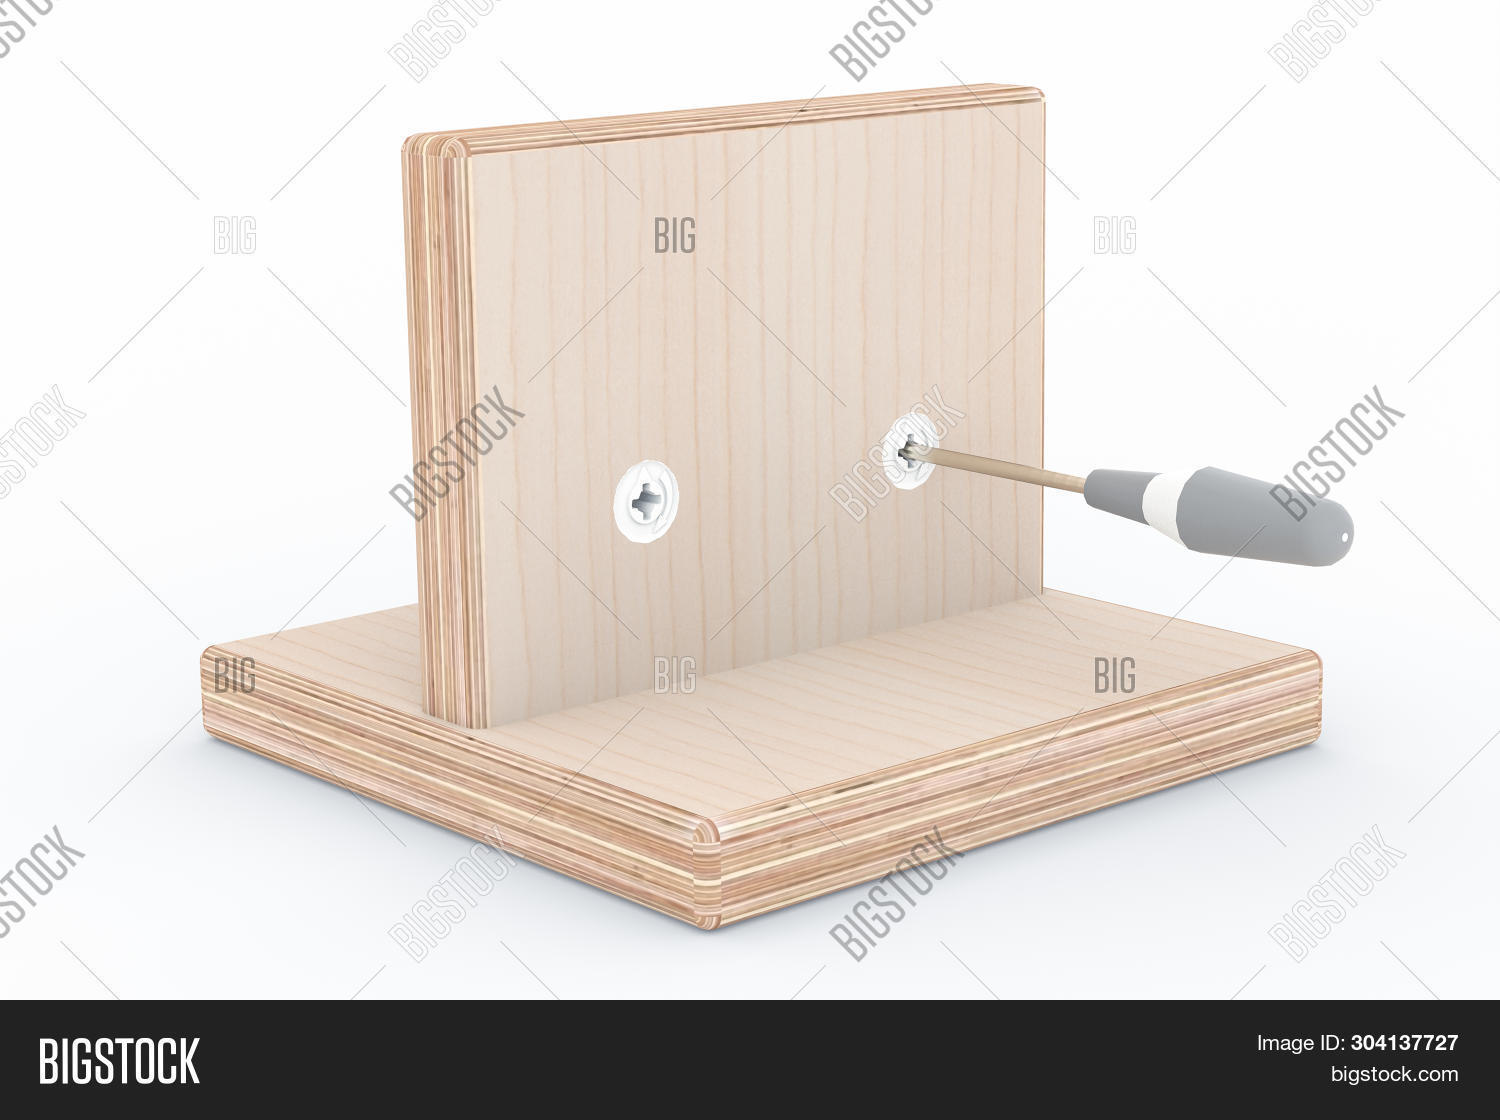 Furniture Connection Image & Photo (Free Trial)  Bigstock